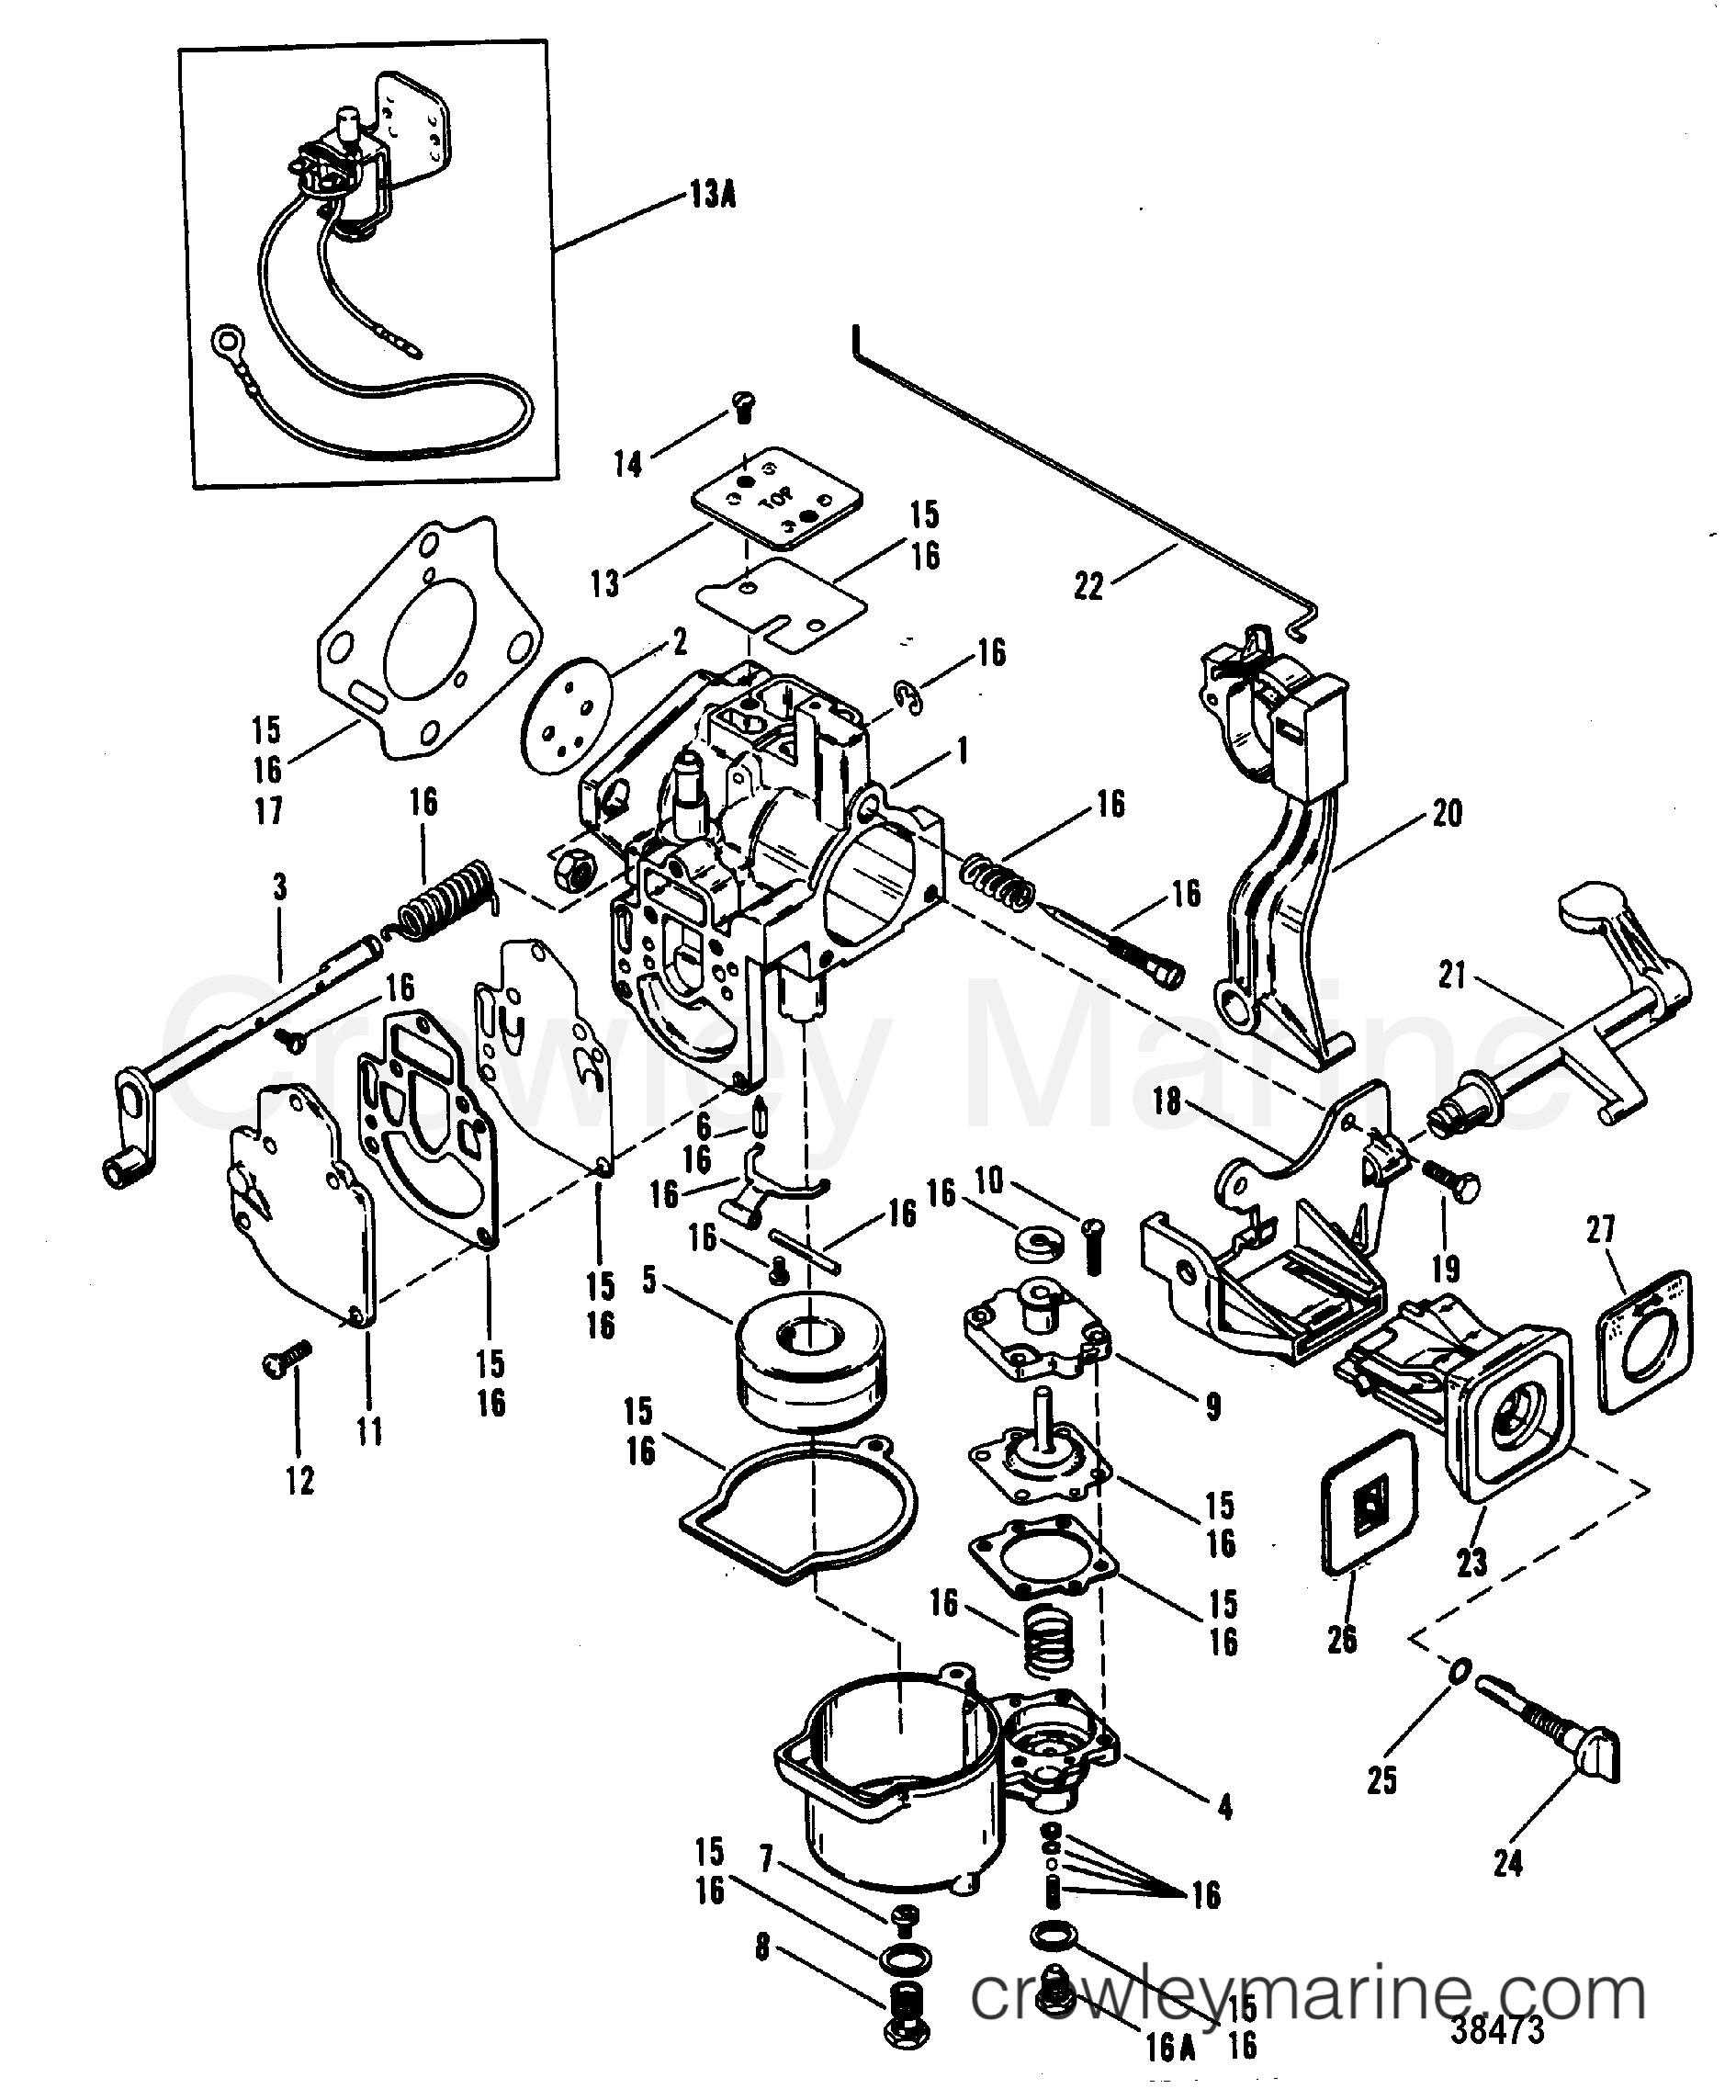 Mercruiser Engine Parts Diagram Carburetor Wmc 9 10 11 12 24 25 26 27 1977 Mariner Outboard 20 [m Of Mercruiser Engine Parts Diagram thermostat Housing Standard Cooling for Mercruiser 5 7l Alpha